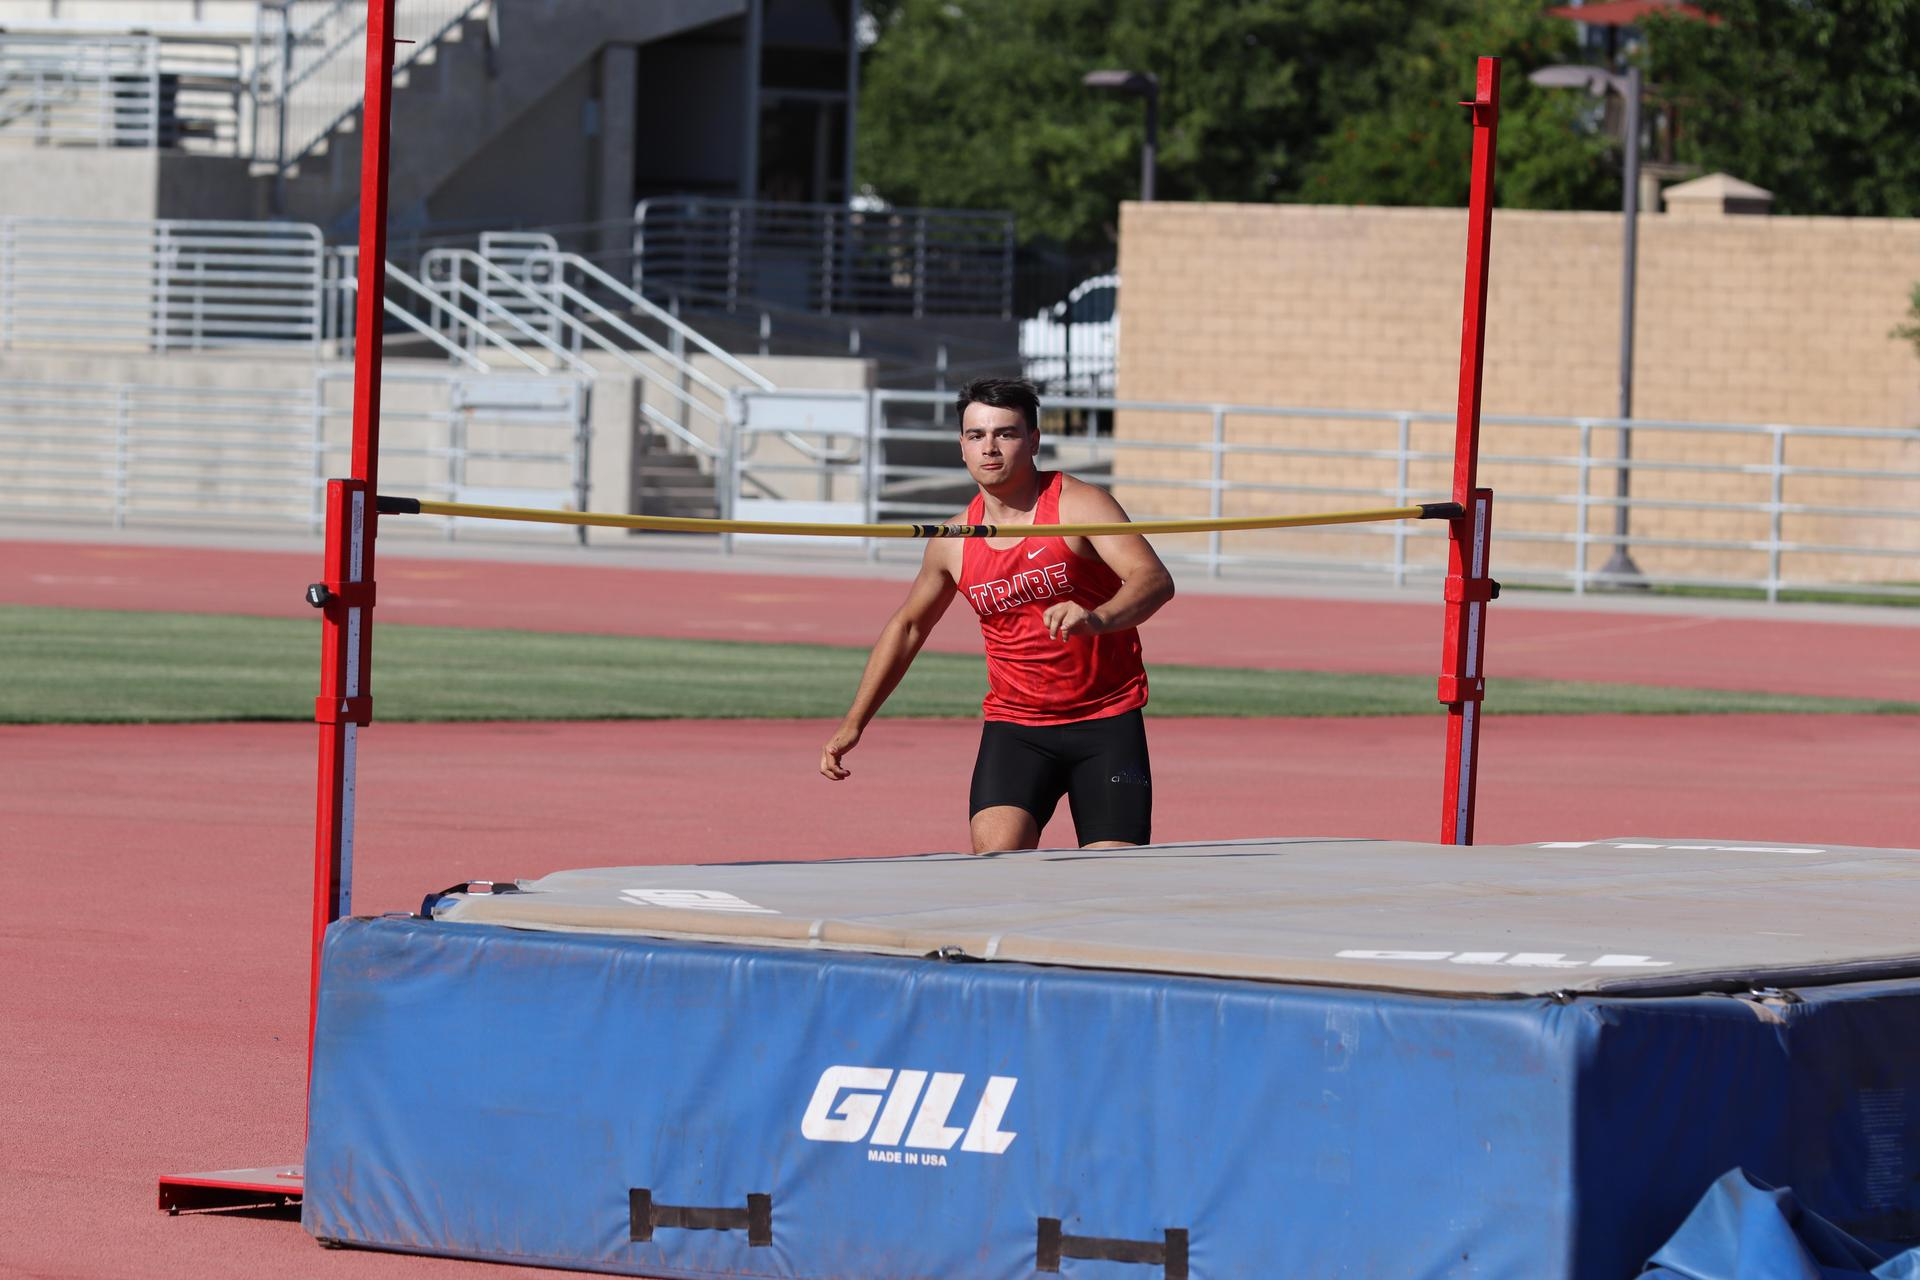 chowchilla high school runners in action